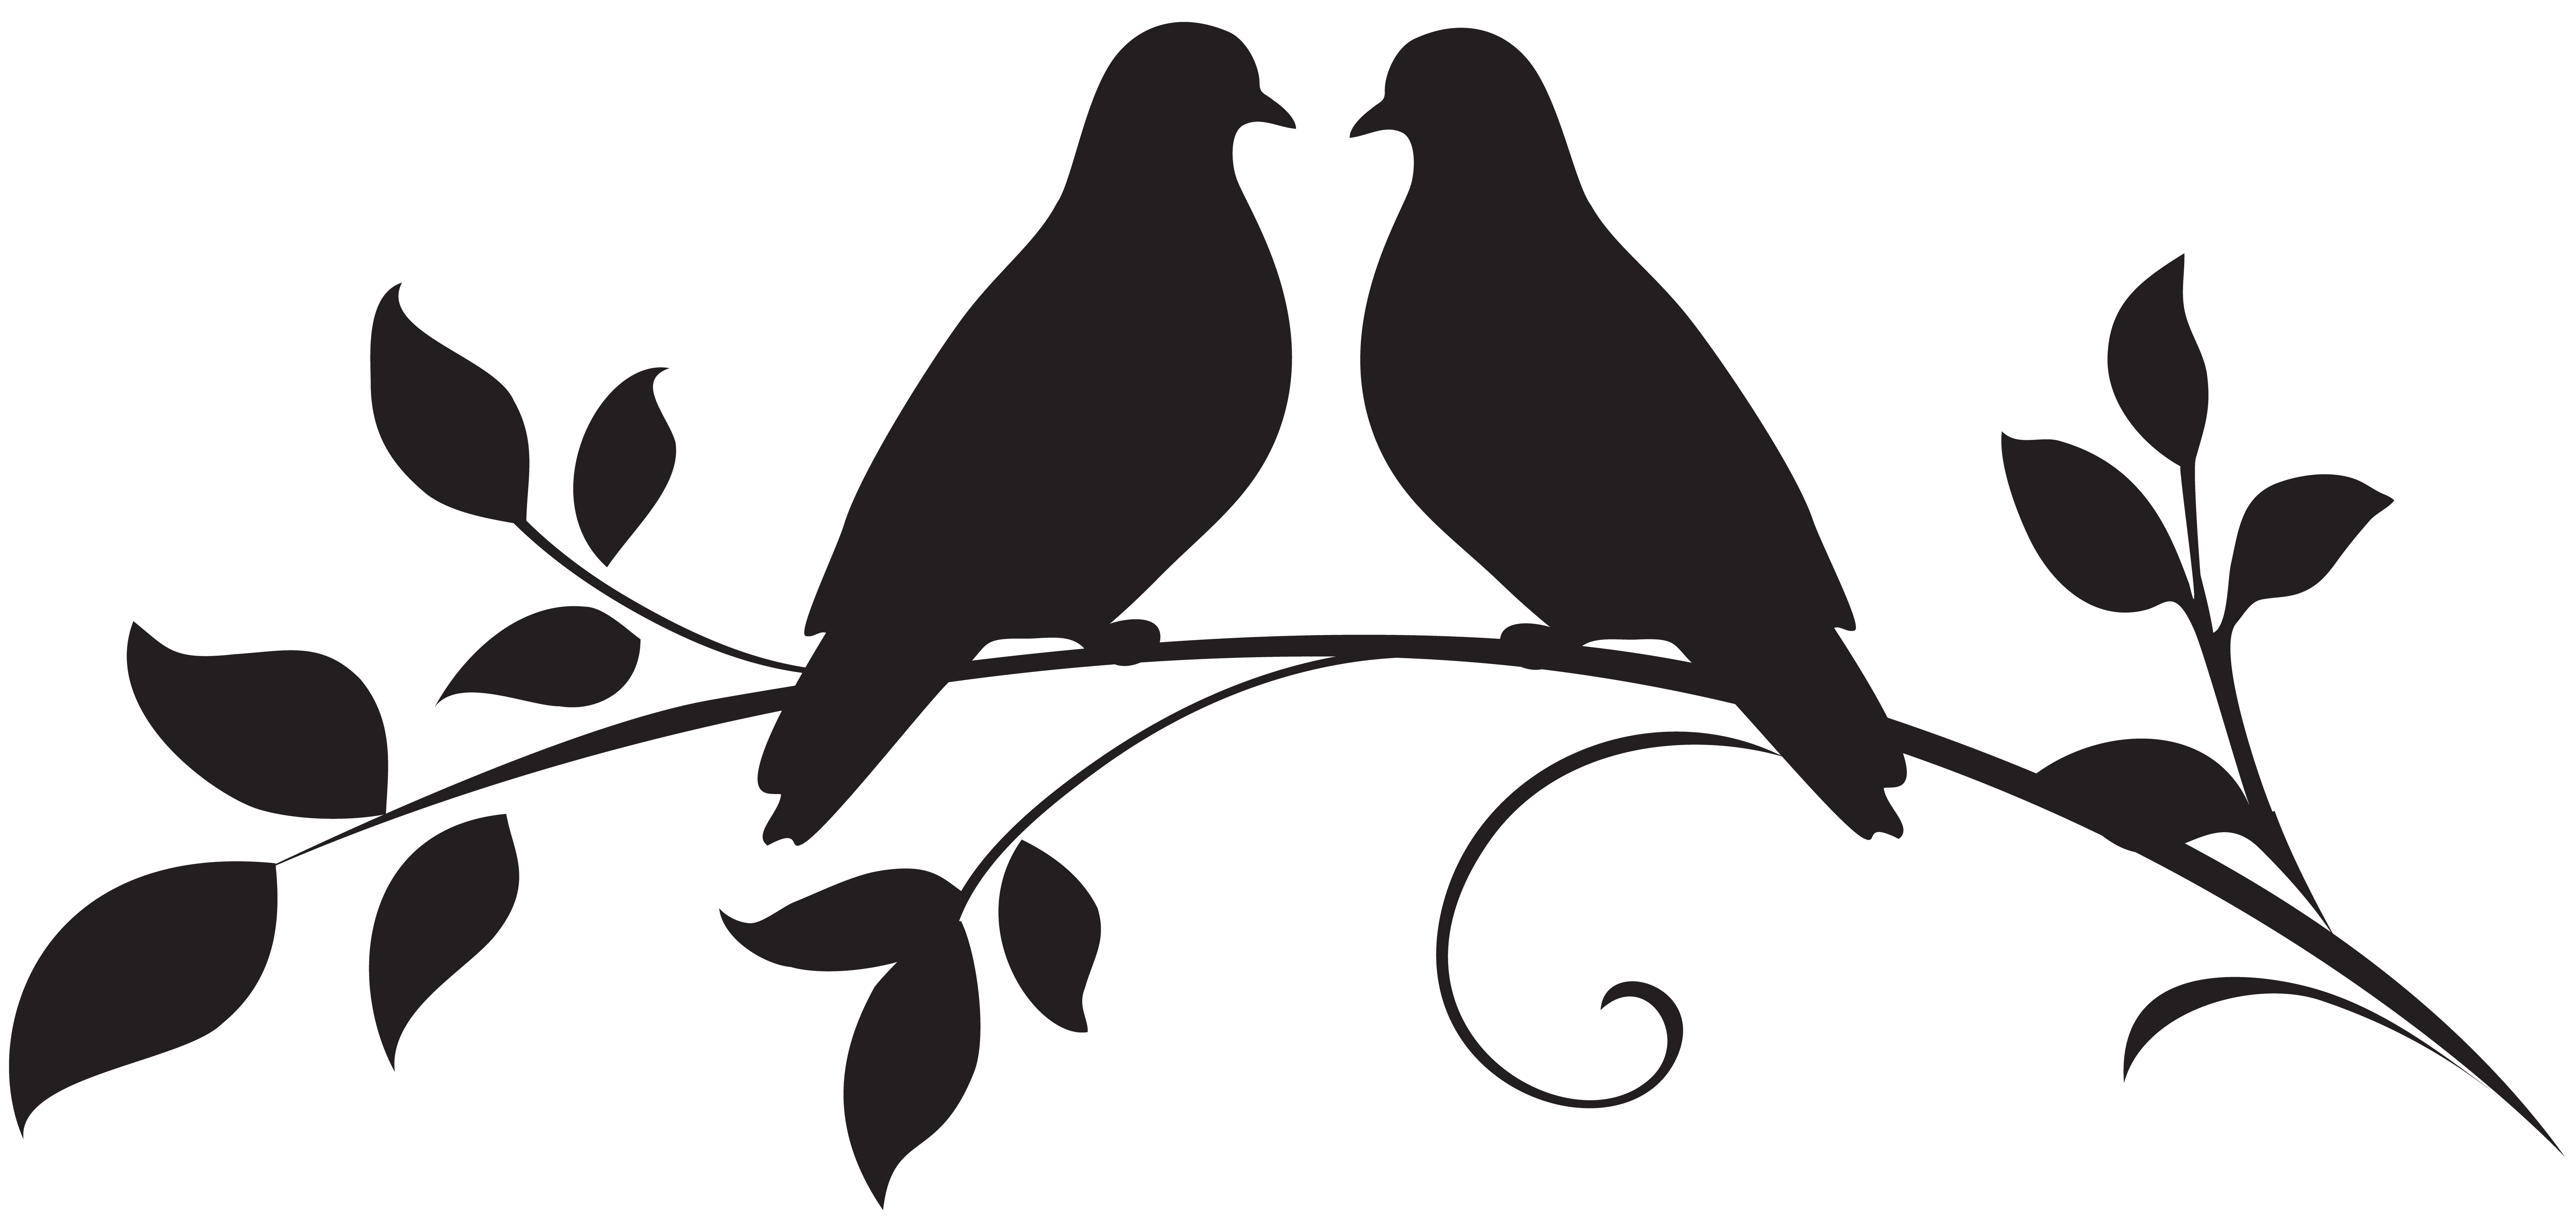 Love silhouette png